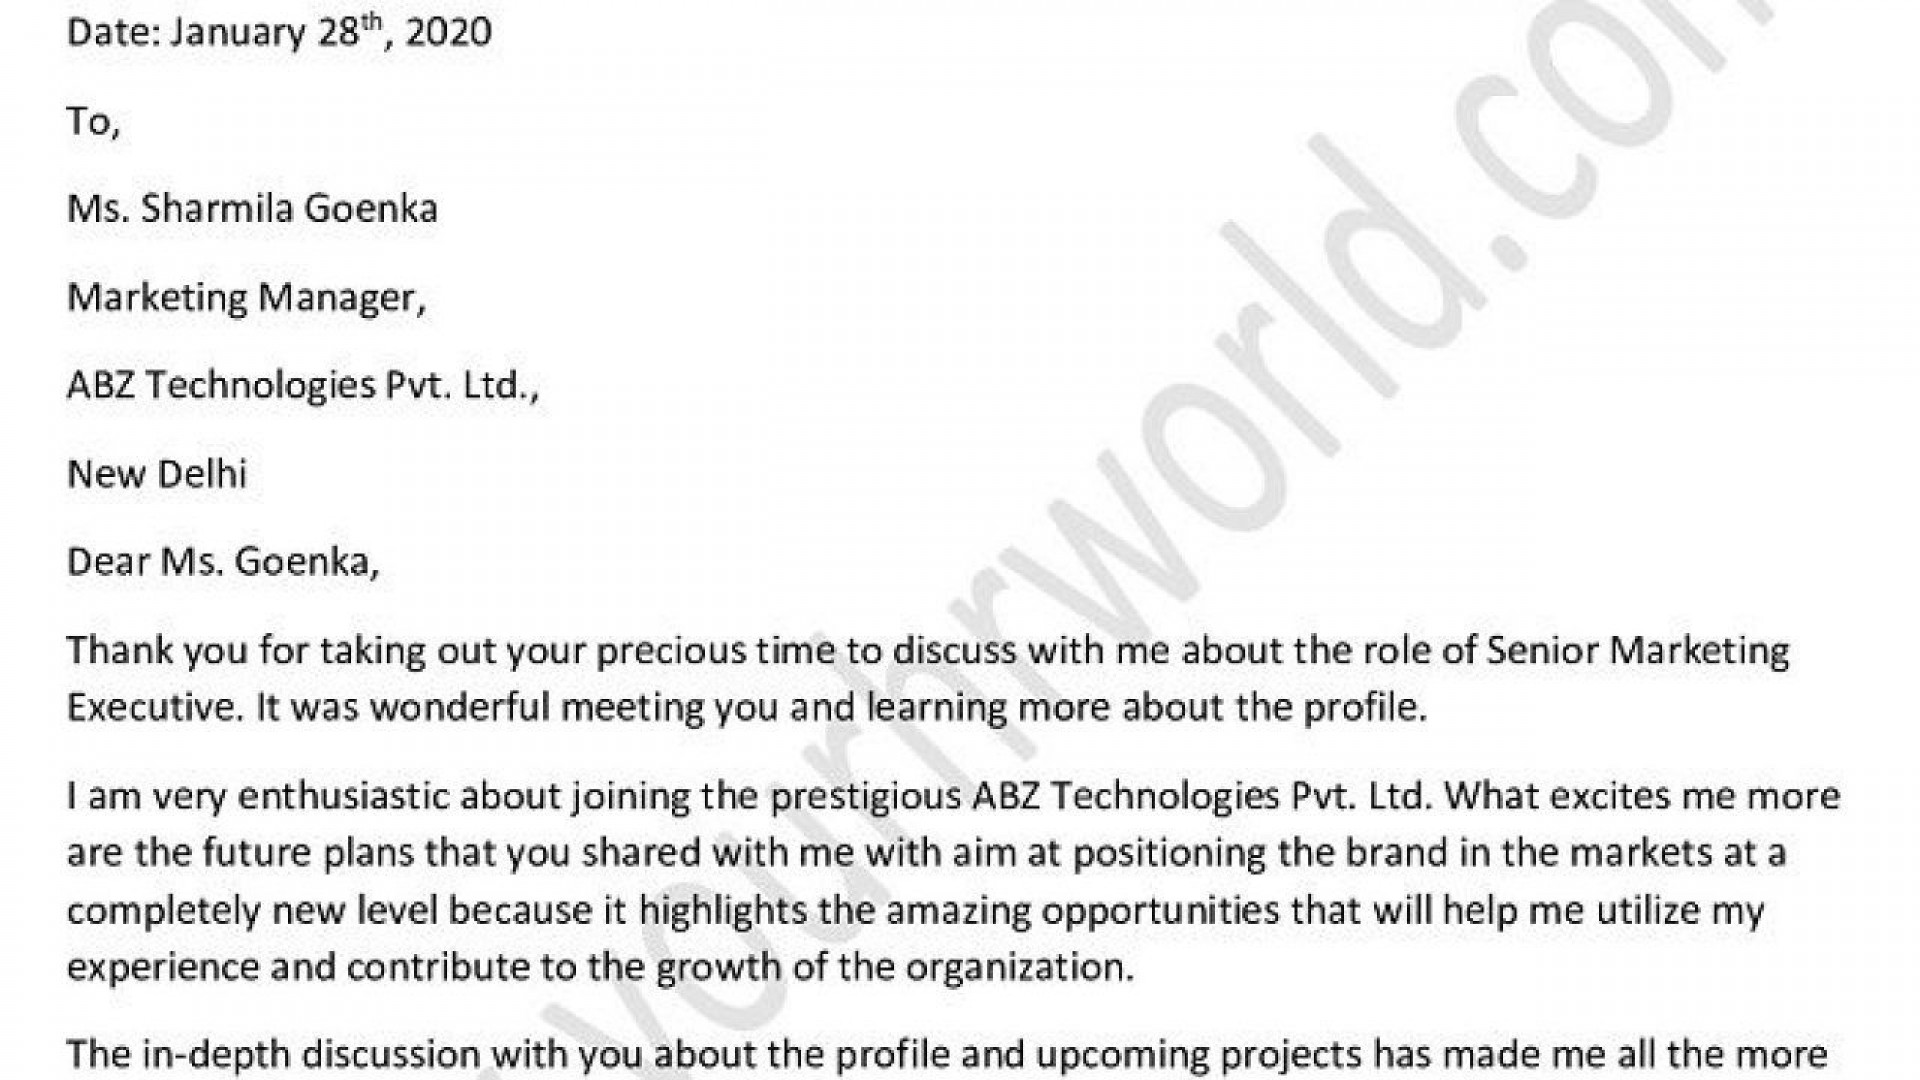 003 Excellent Follow Up Email Template Interview High Resolution  Sample For Statu After Second Before Job1920